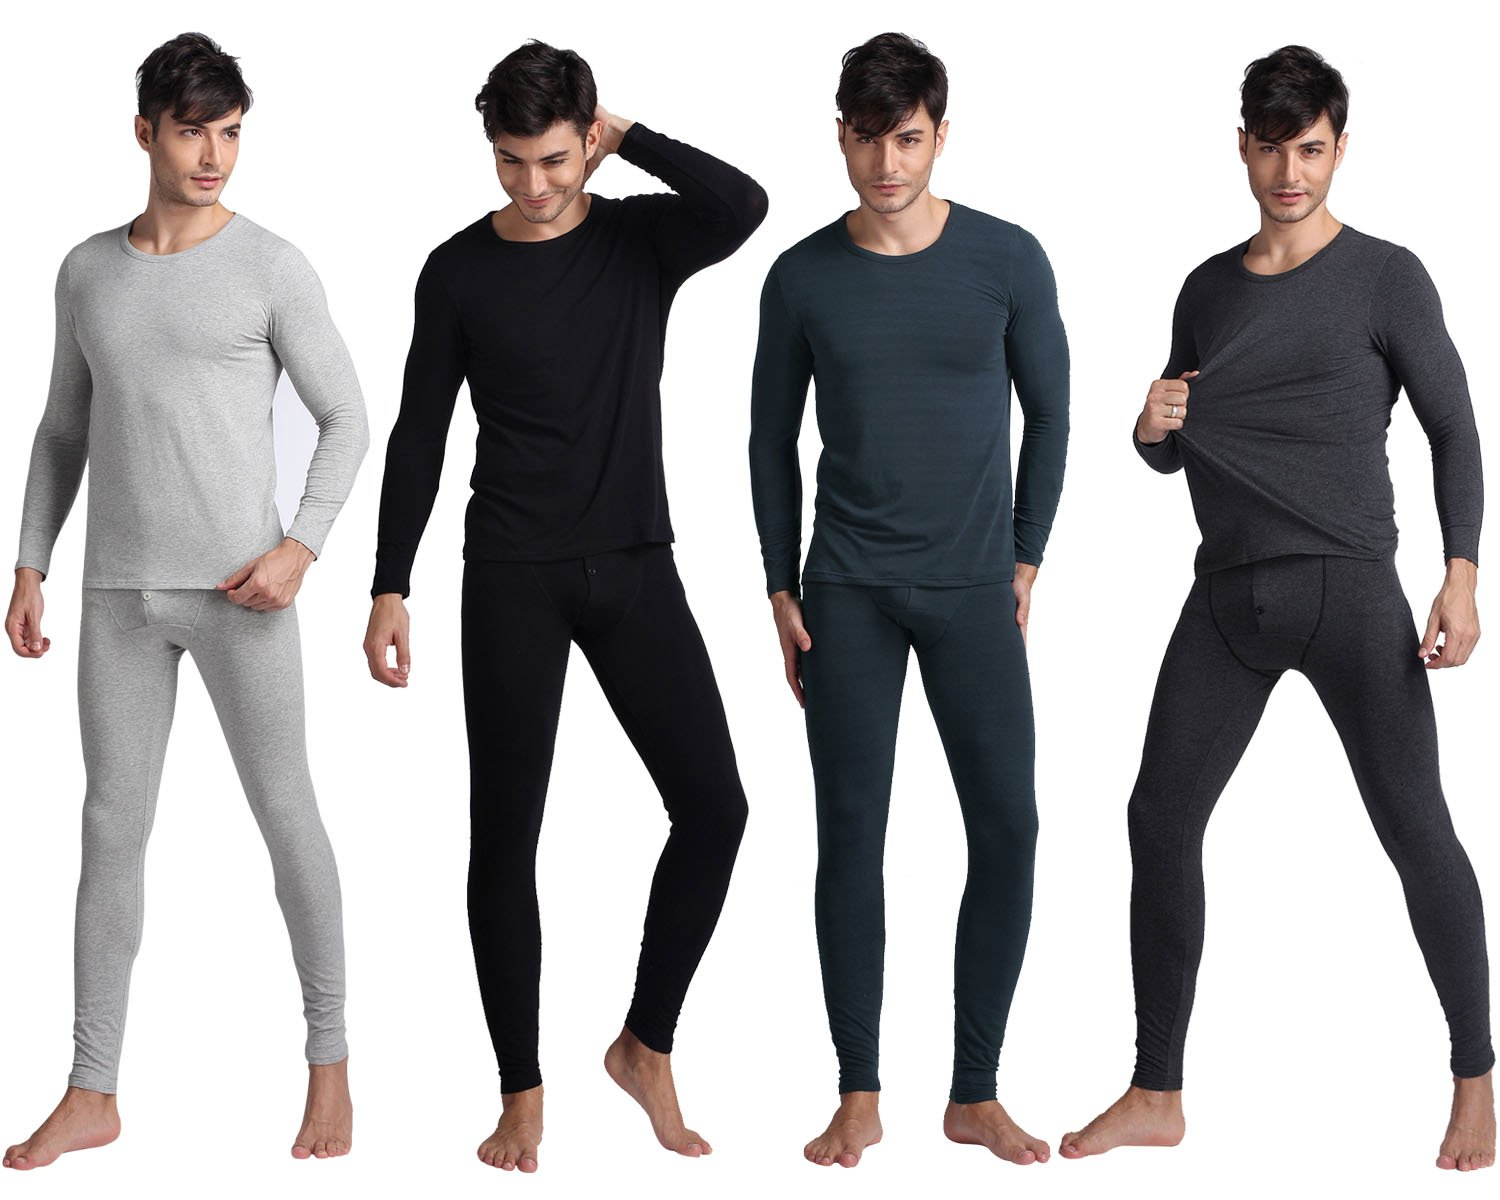 Godsen Men's Thermal Underwear Set 100% Cotton GW01-Grey